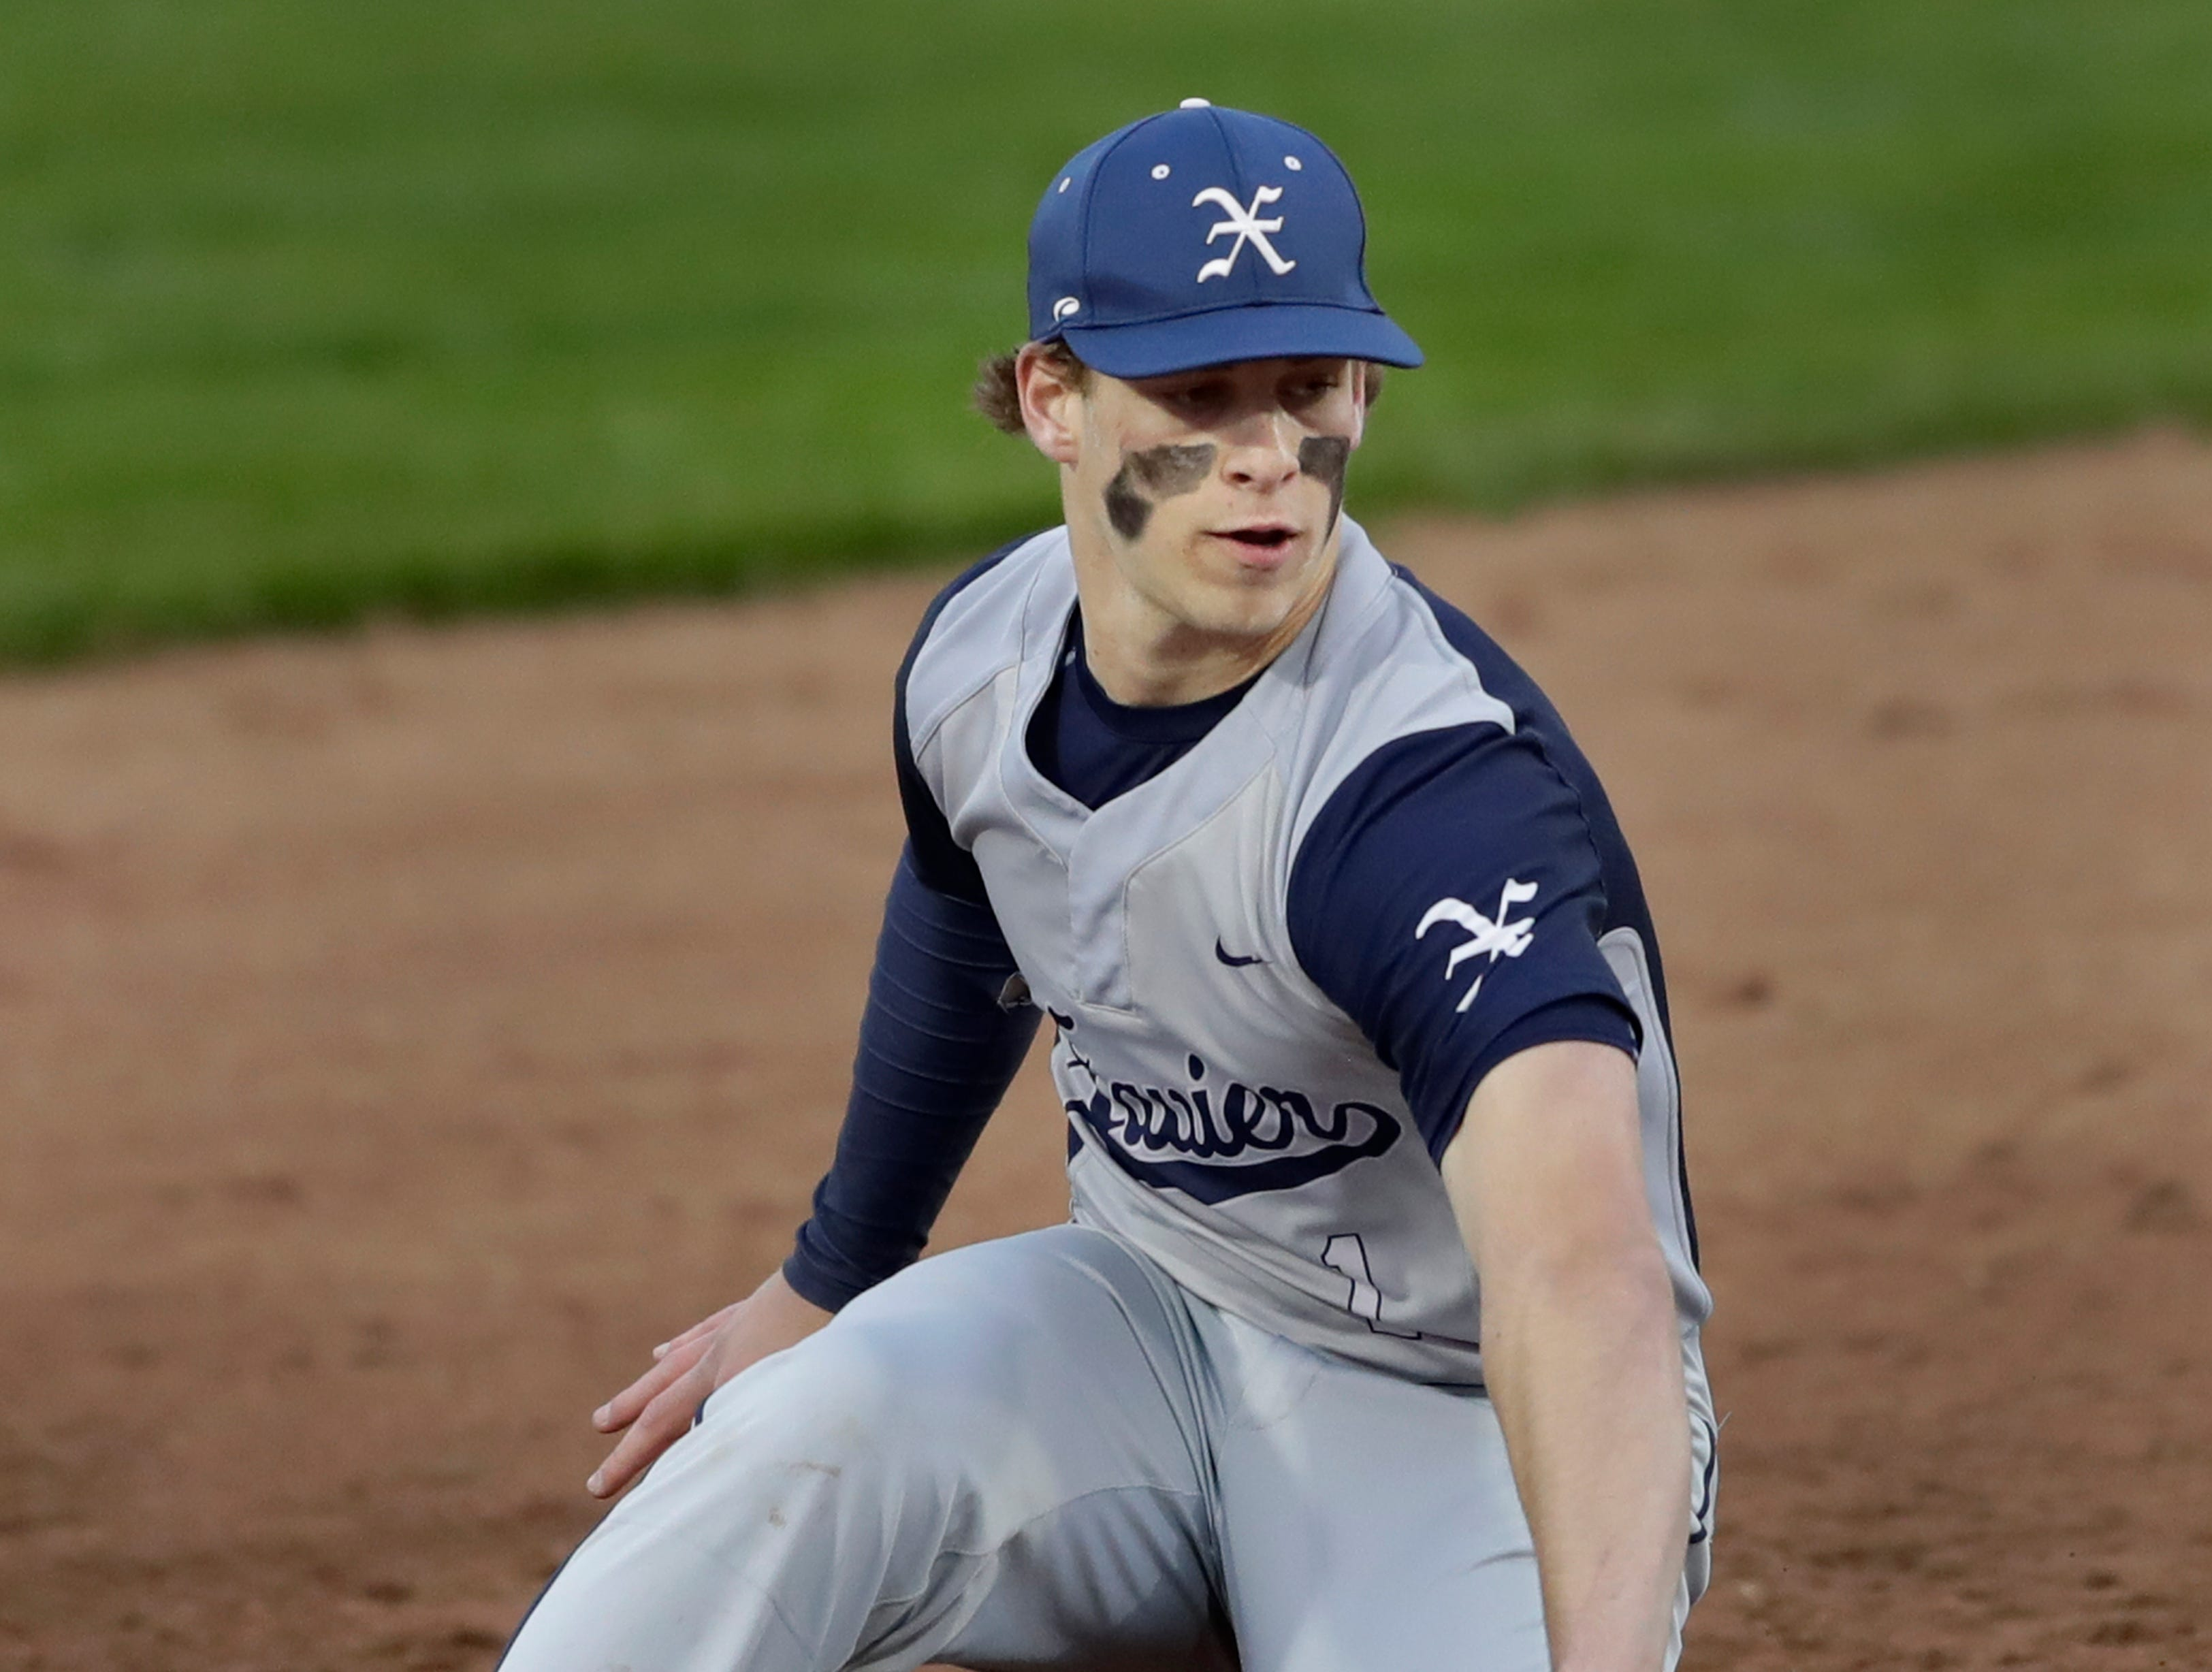 Xavier High School's TJ Van Eperen (1) fields an infield hit against Menasha High School during their boys baseball game Thursday, May 2, 2019, at Don Hawkins Field in Grand Chute, Wis. Dan Powers/USA TODAY NETWORK-Wisconsin